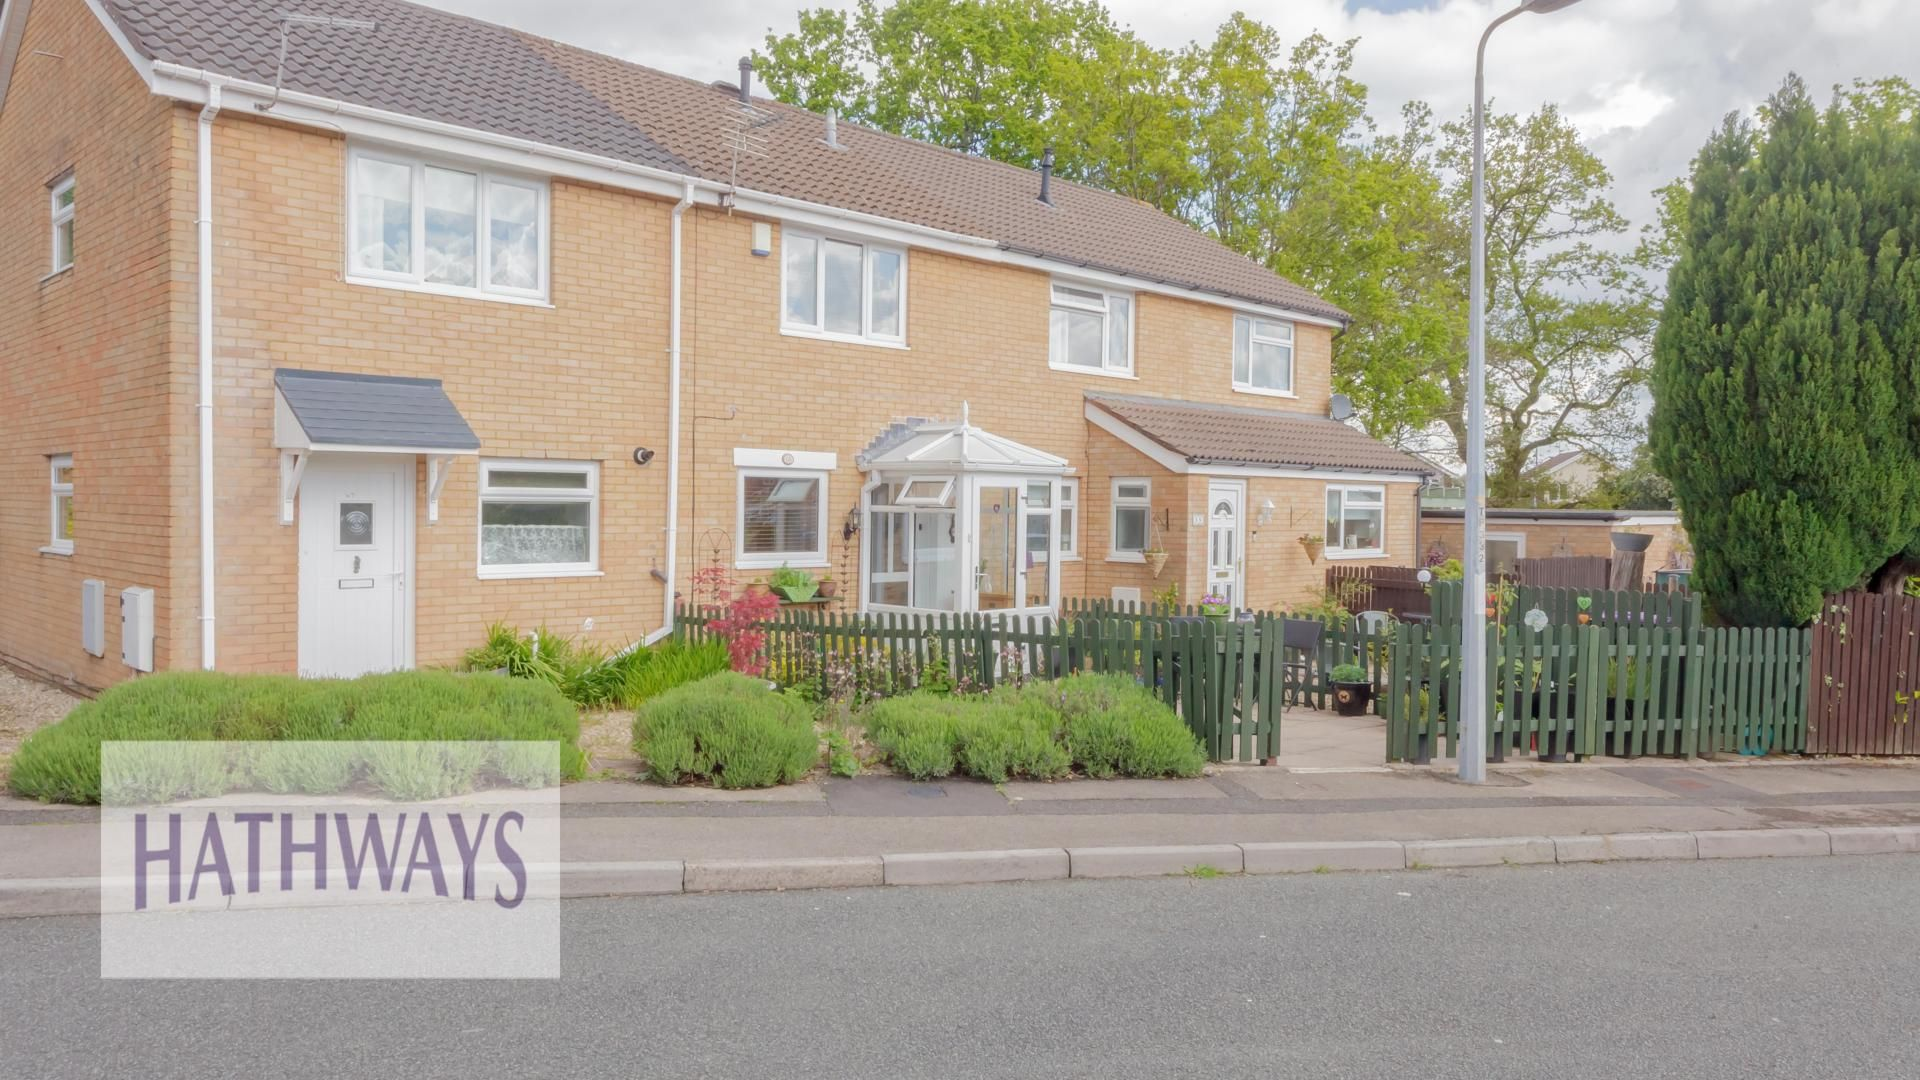 2 bed house for sale in Pentre Close, NP44